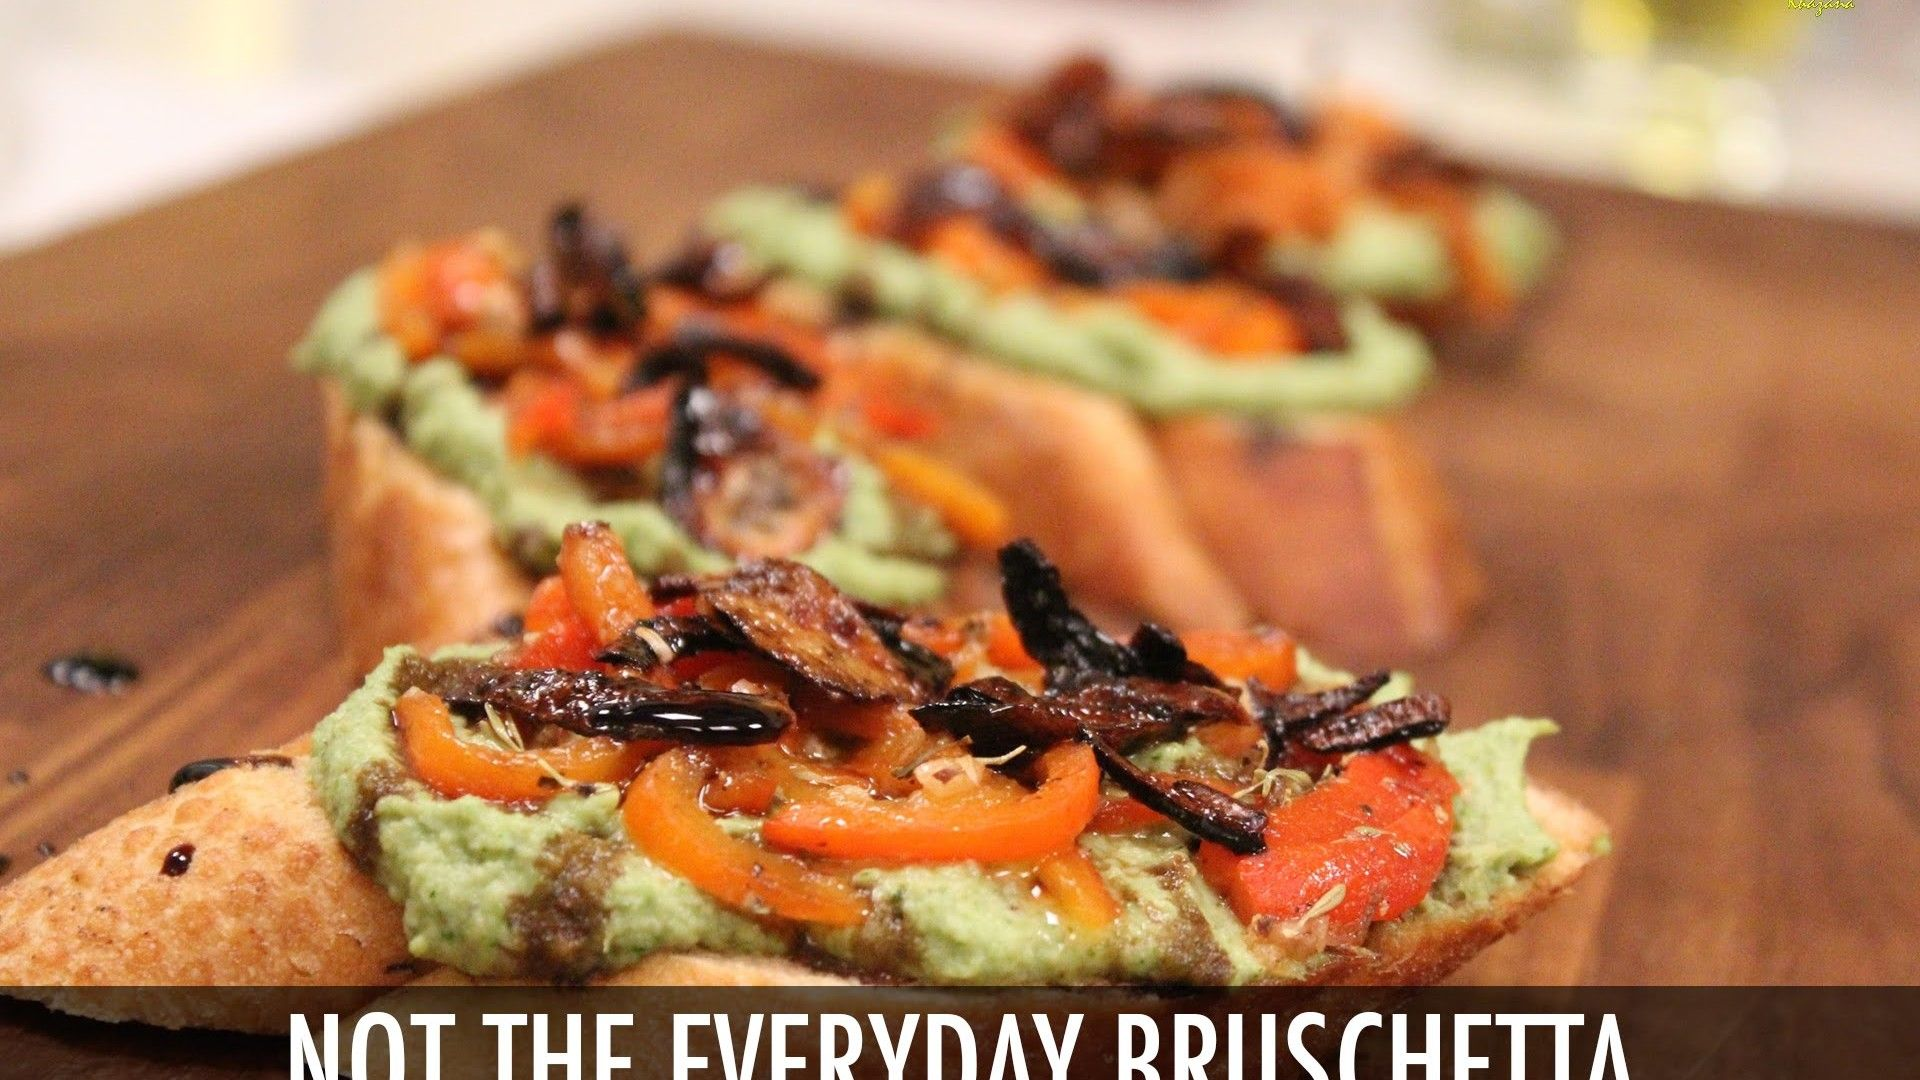 Not the everyday bruschetta quick easy recipes sanjeev kapoor not the everyday bruschetta quick easy recipes sanjeev kapoor khazana forumfinder Image collections